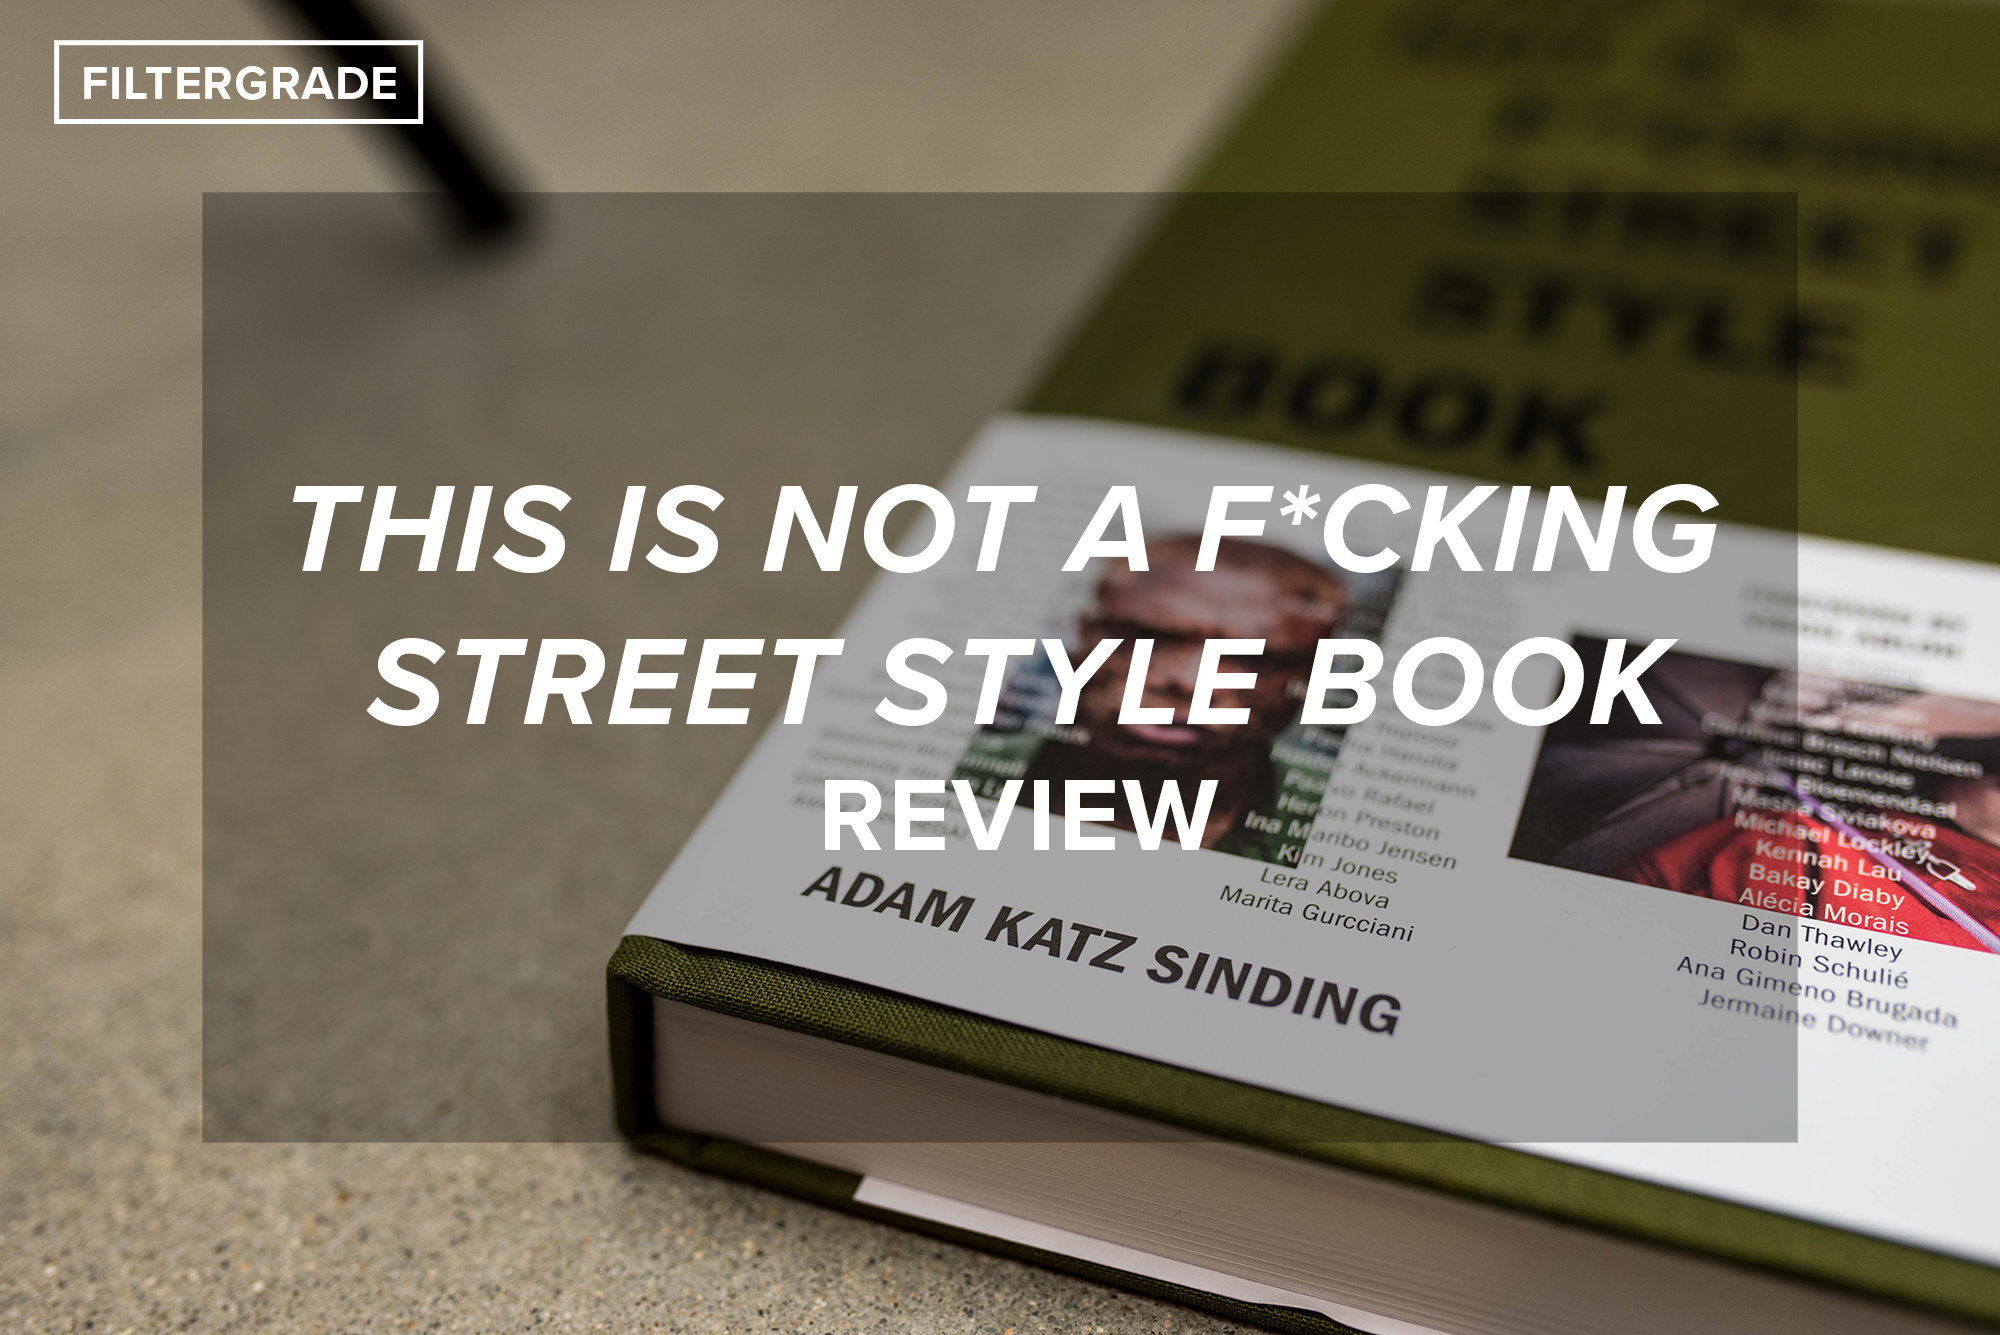 8 This is NOT a F*cking Street Style Book Review - FilterGrade